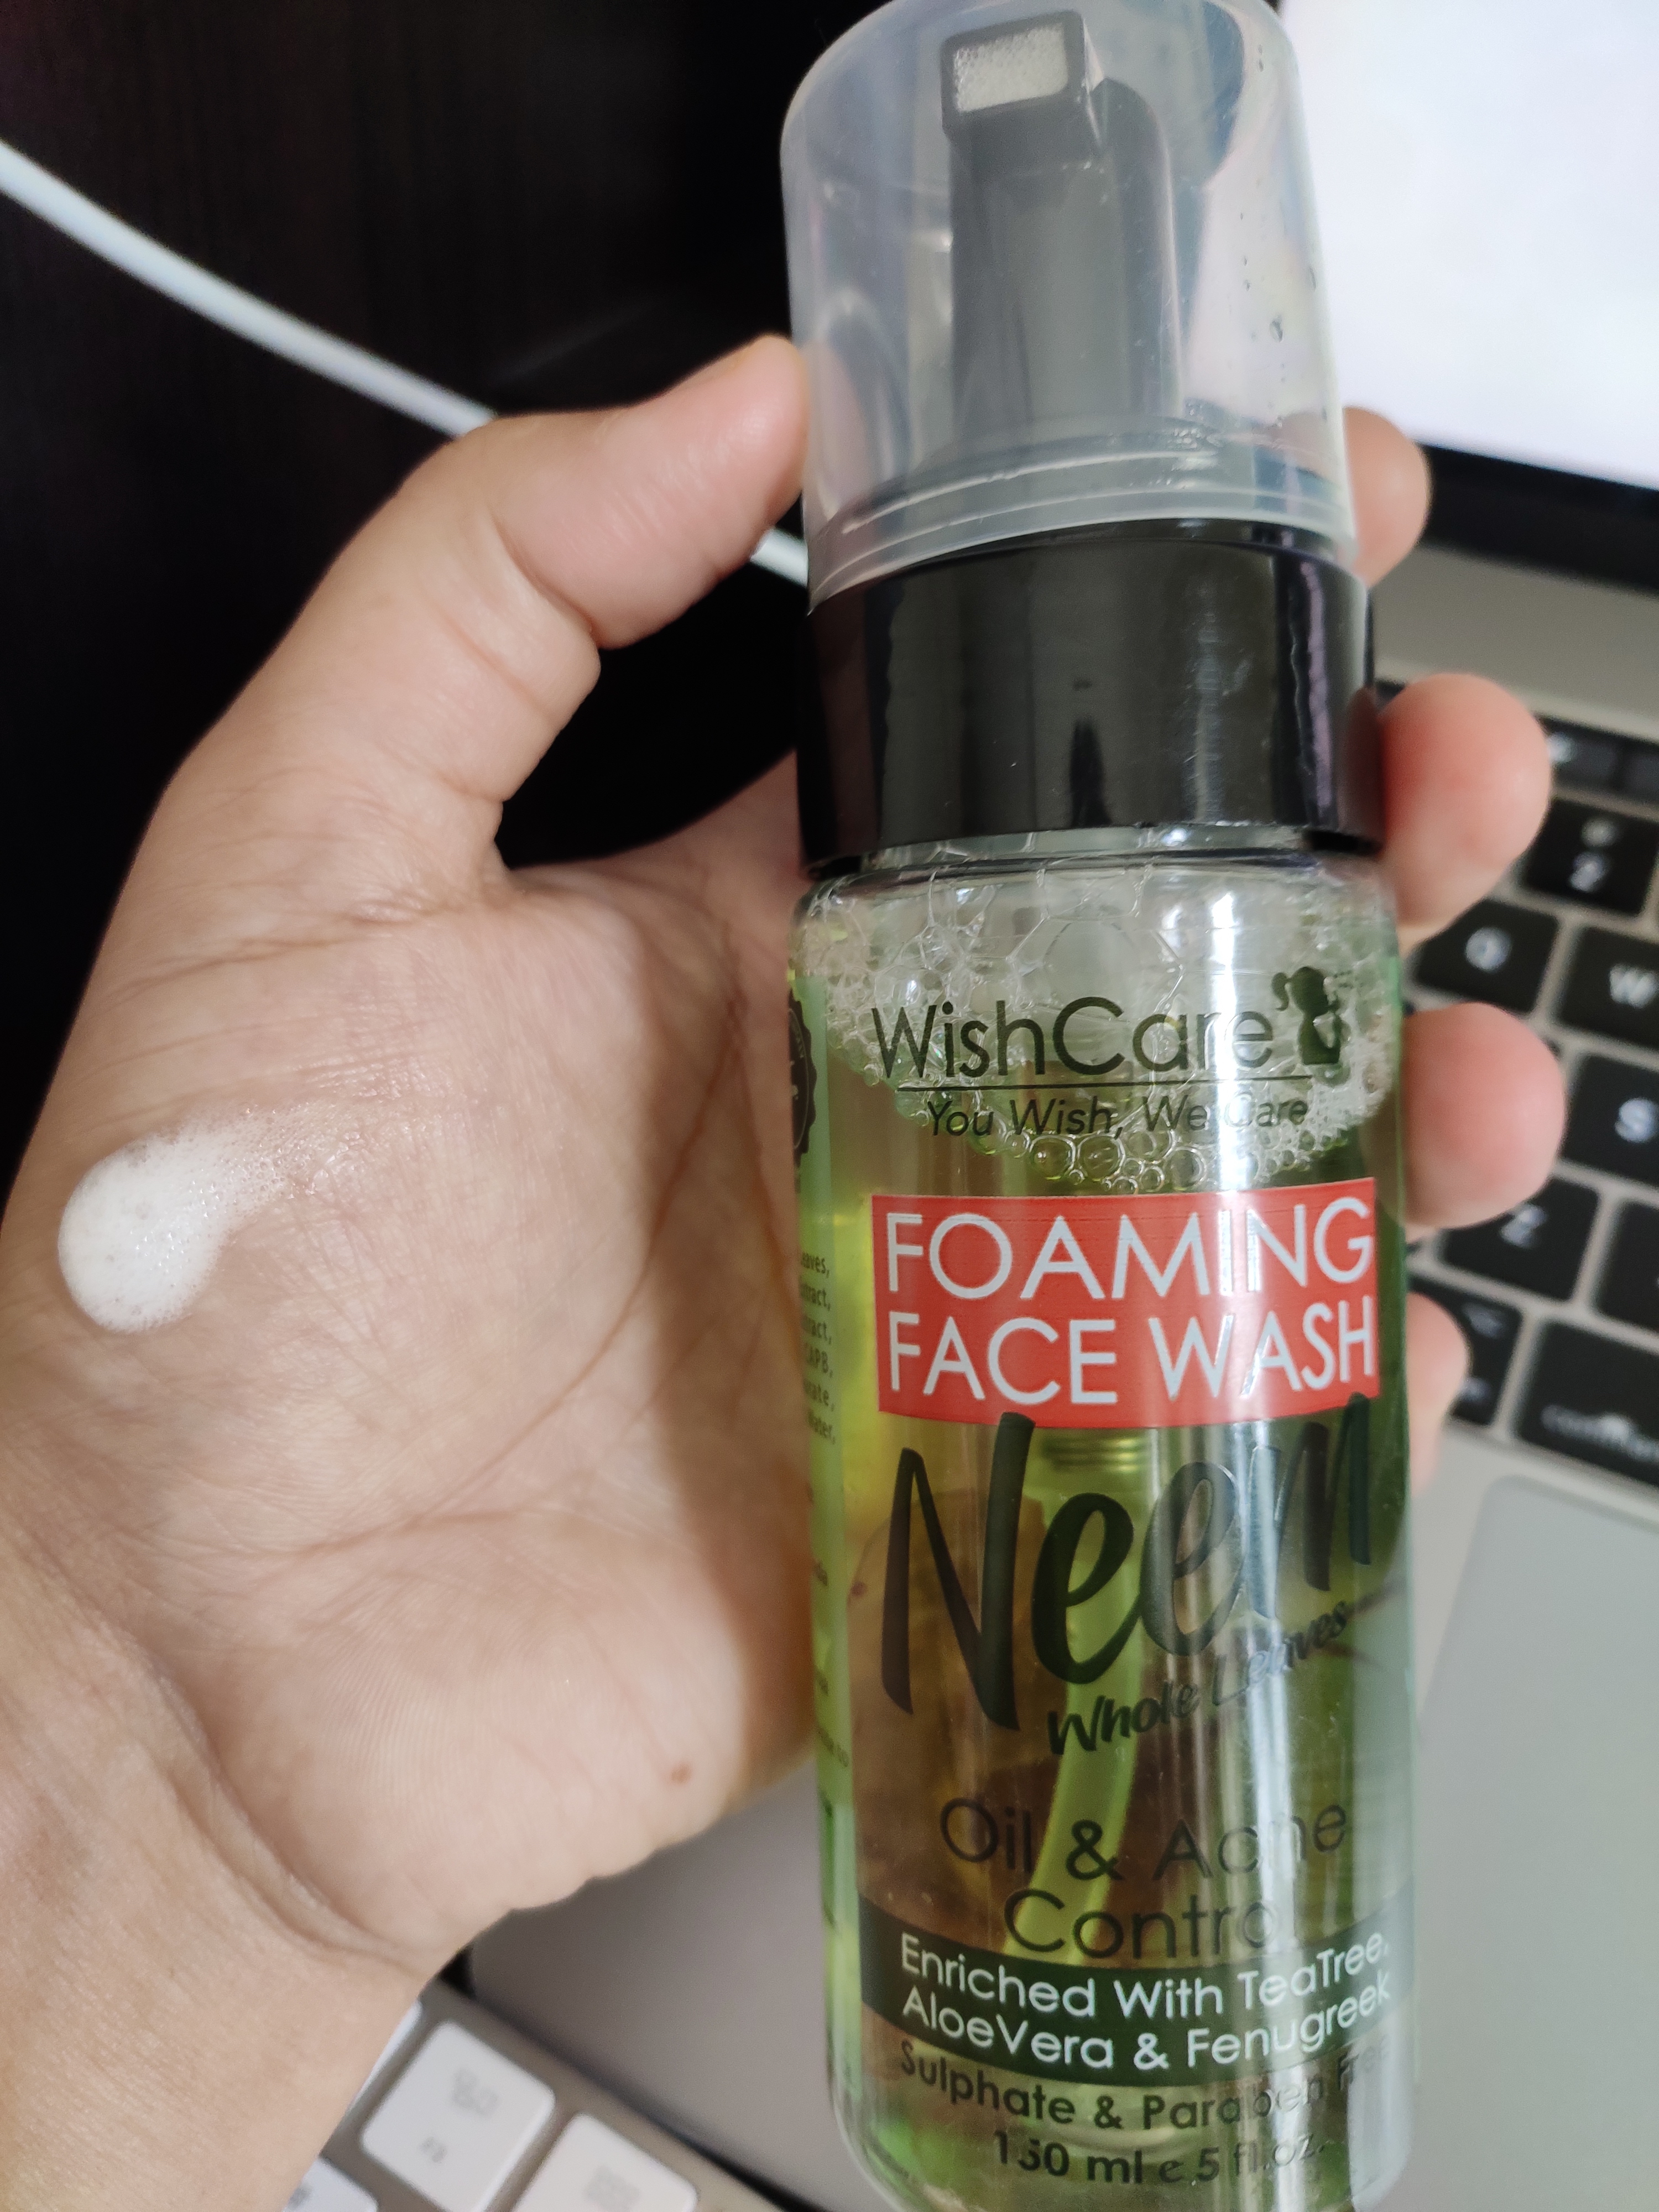 WishCare Foaming Neem Face Wash pic 2-Refreshing face wash-By bhawna_sharma